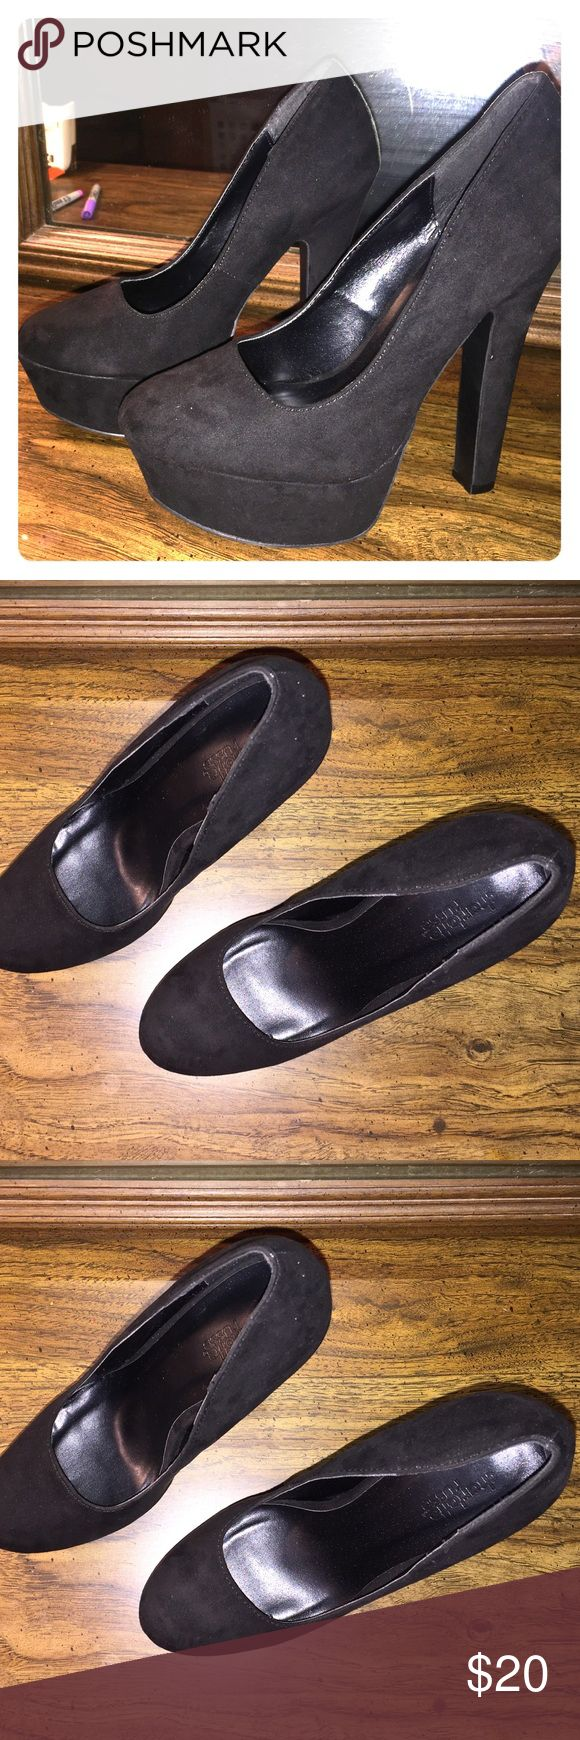 Charlotte Russe Heels Black Charlotte Russe heels only worn once for about an hour!!! Size 8. Send your offers. Charlotte Russe Shoes Heels